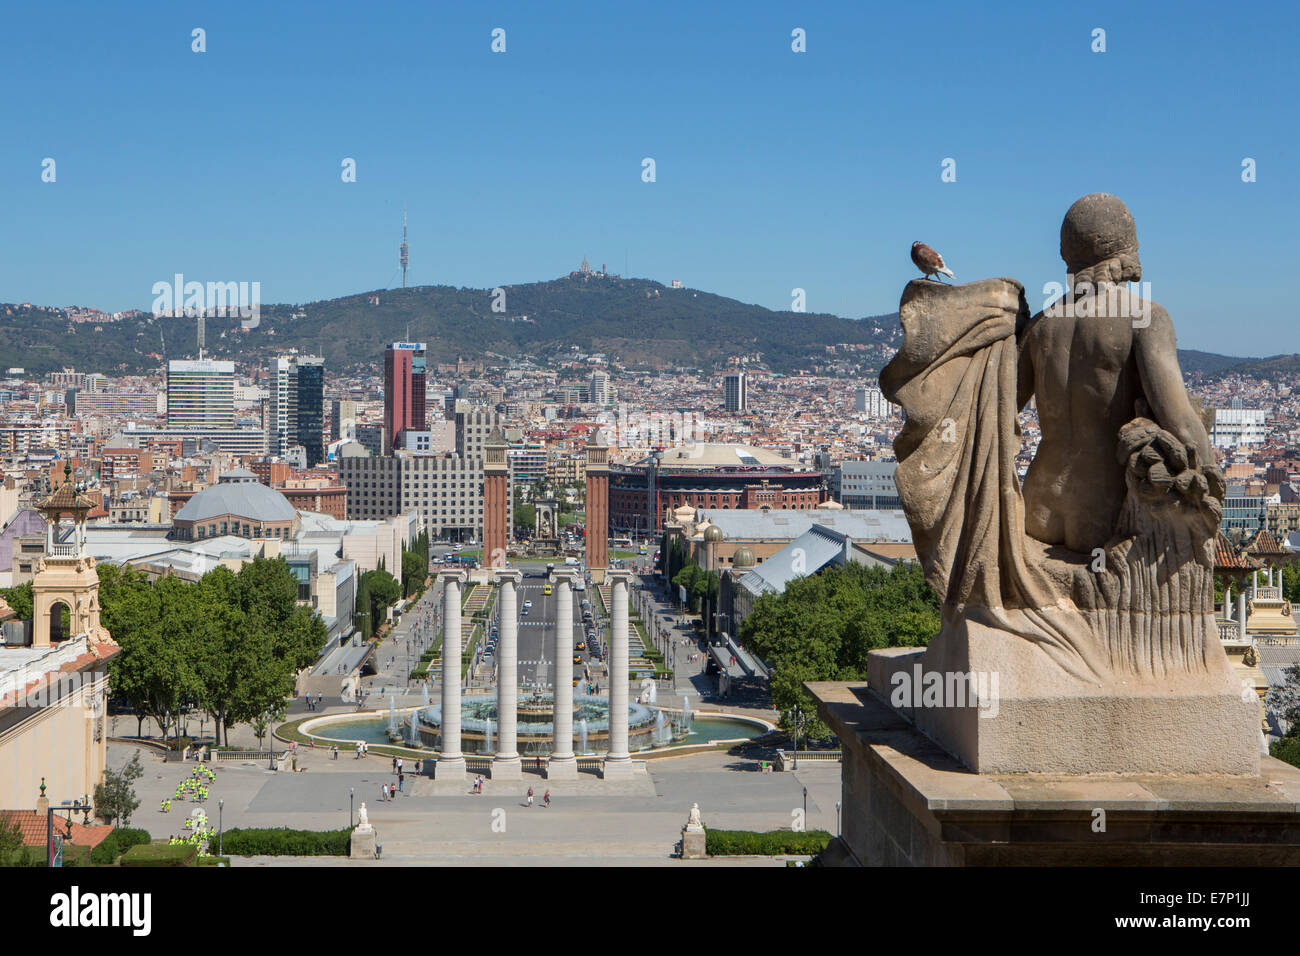 Espana Square, Sans, architecture, Barcelona, Catalonia, city, columns, fountains, hill, mountain, skyline, Spain, - Stock Image